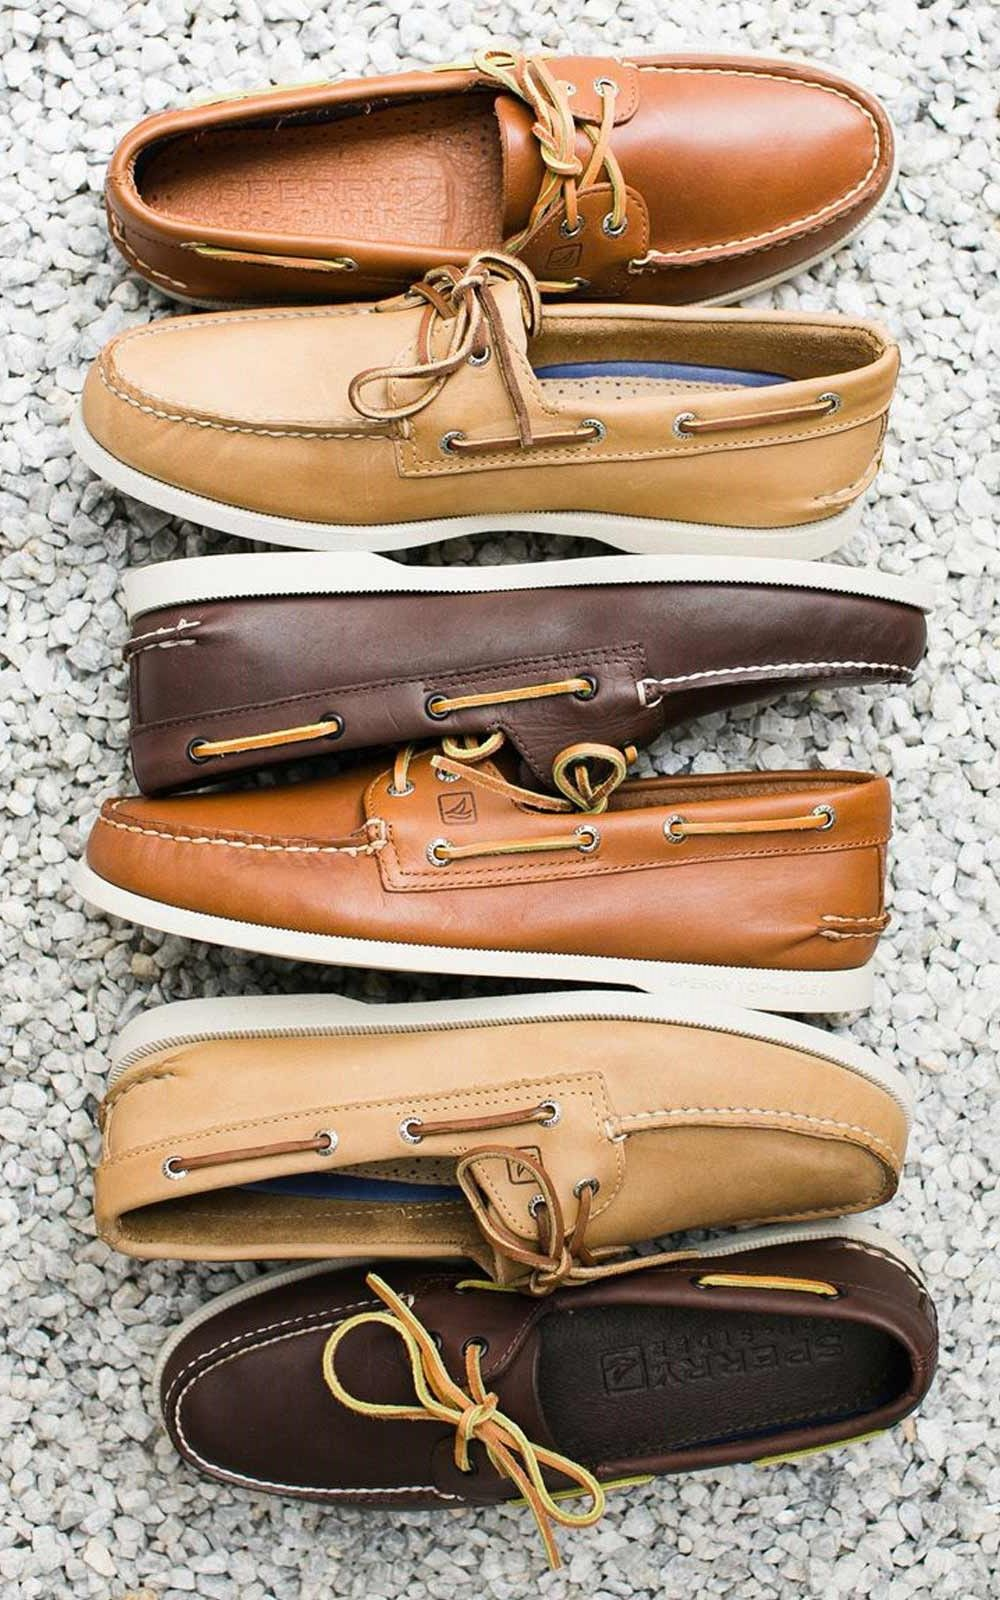 4550b3a9ec5 Boat Shoes Do s and Don ts